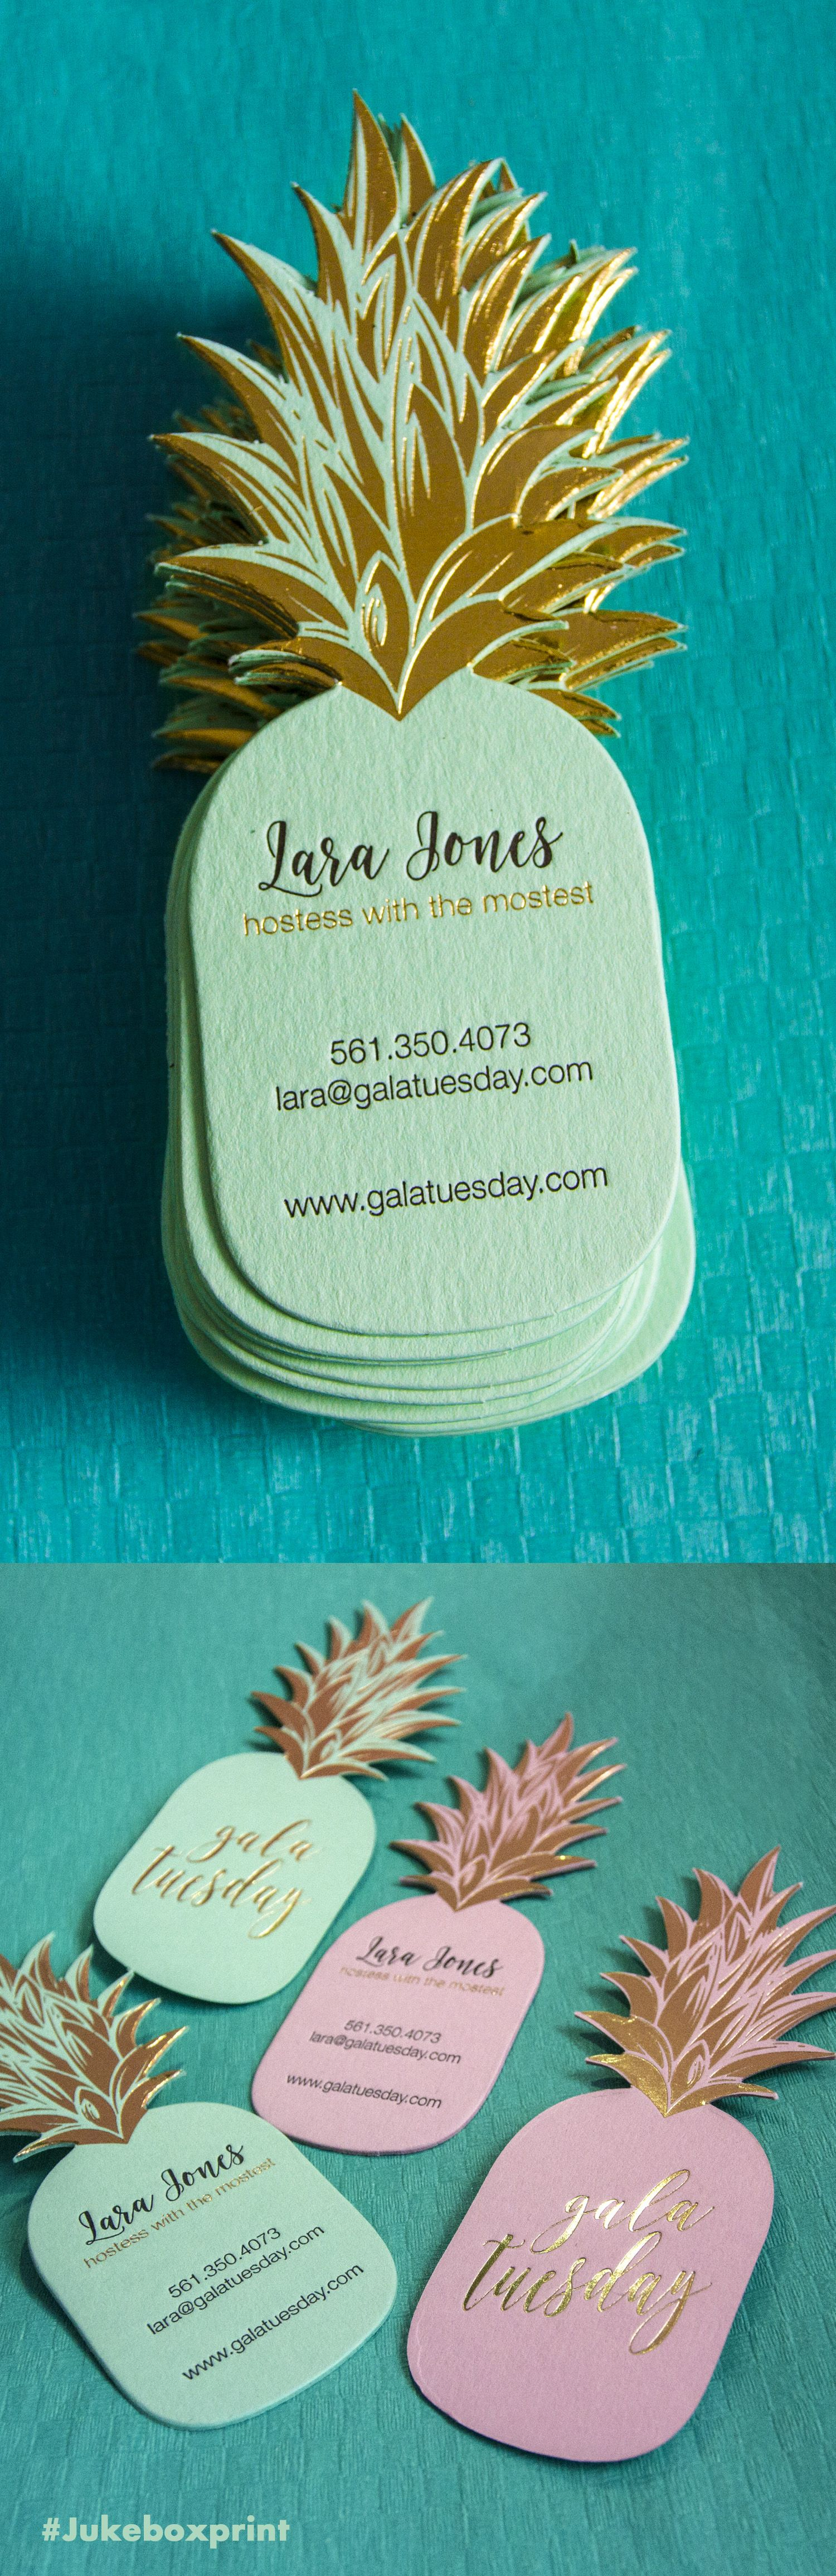 the cutest business card a pineapple shape with letterpress and